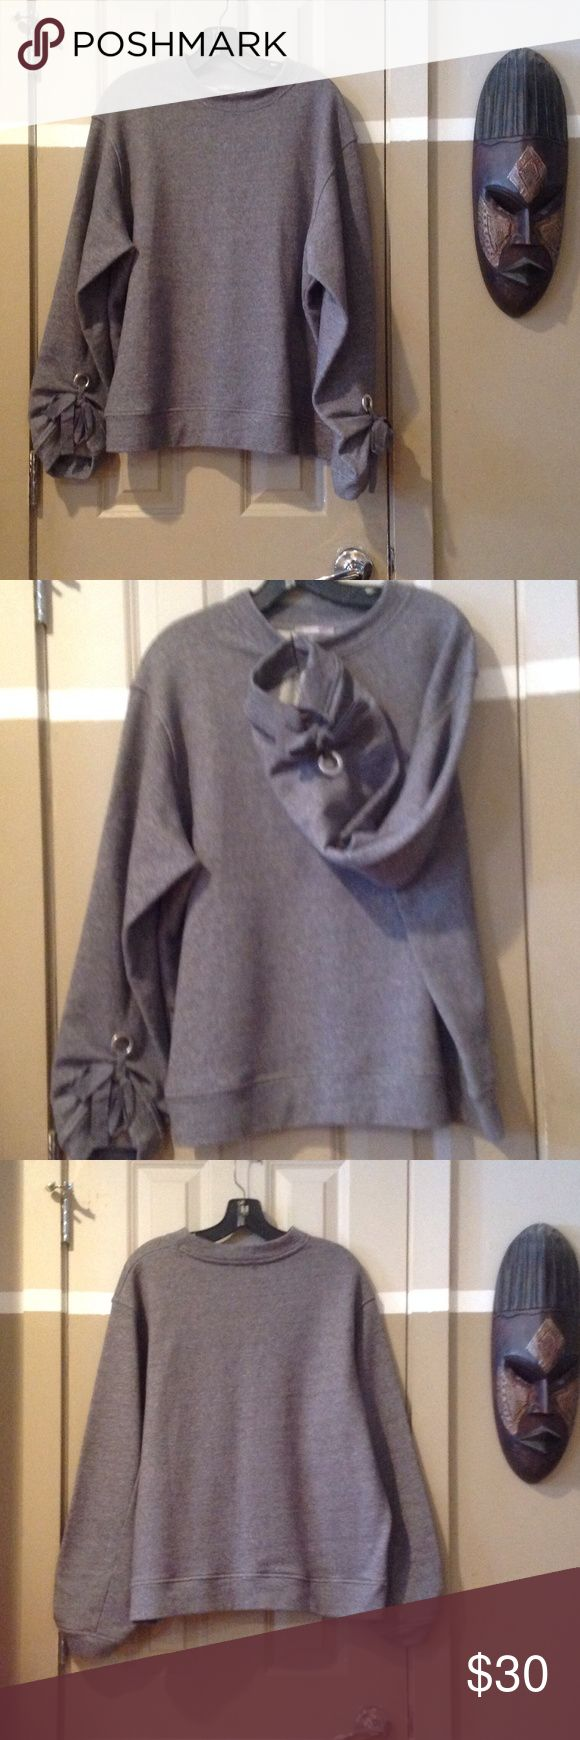 ZARA SWEATSHIRT WITH FANCY BOW TIE ARM CLOSURE ZARA SWEATSHIRT WITH FANCY BOW TIE ARM CLOSURE. Large and great quality. NWOT/never worn. Fits like a large, but can fit a small extra large. Zara Tops Sweatshirts & Hoodies